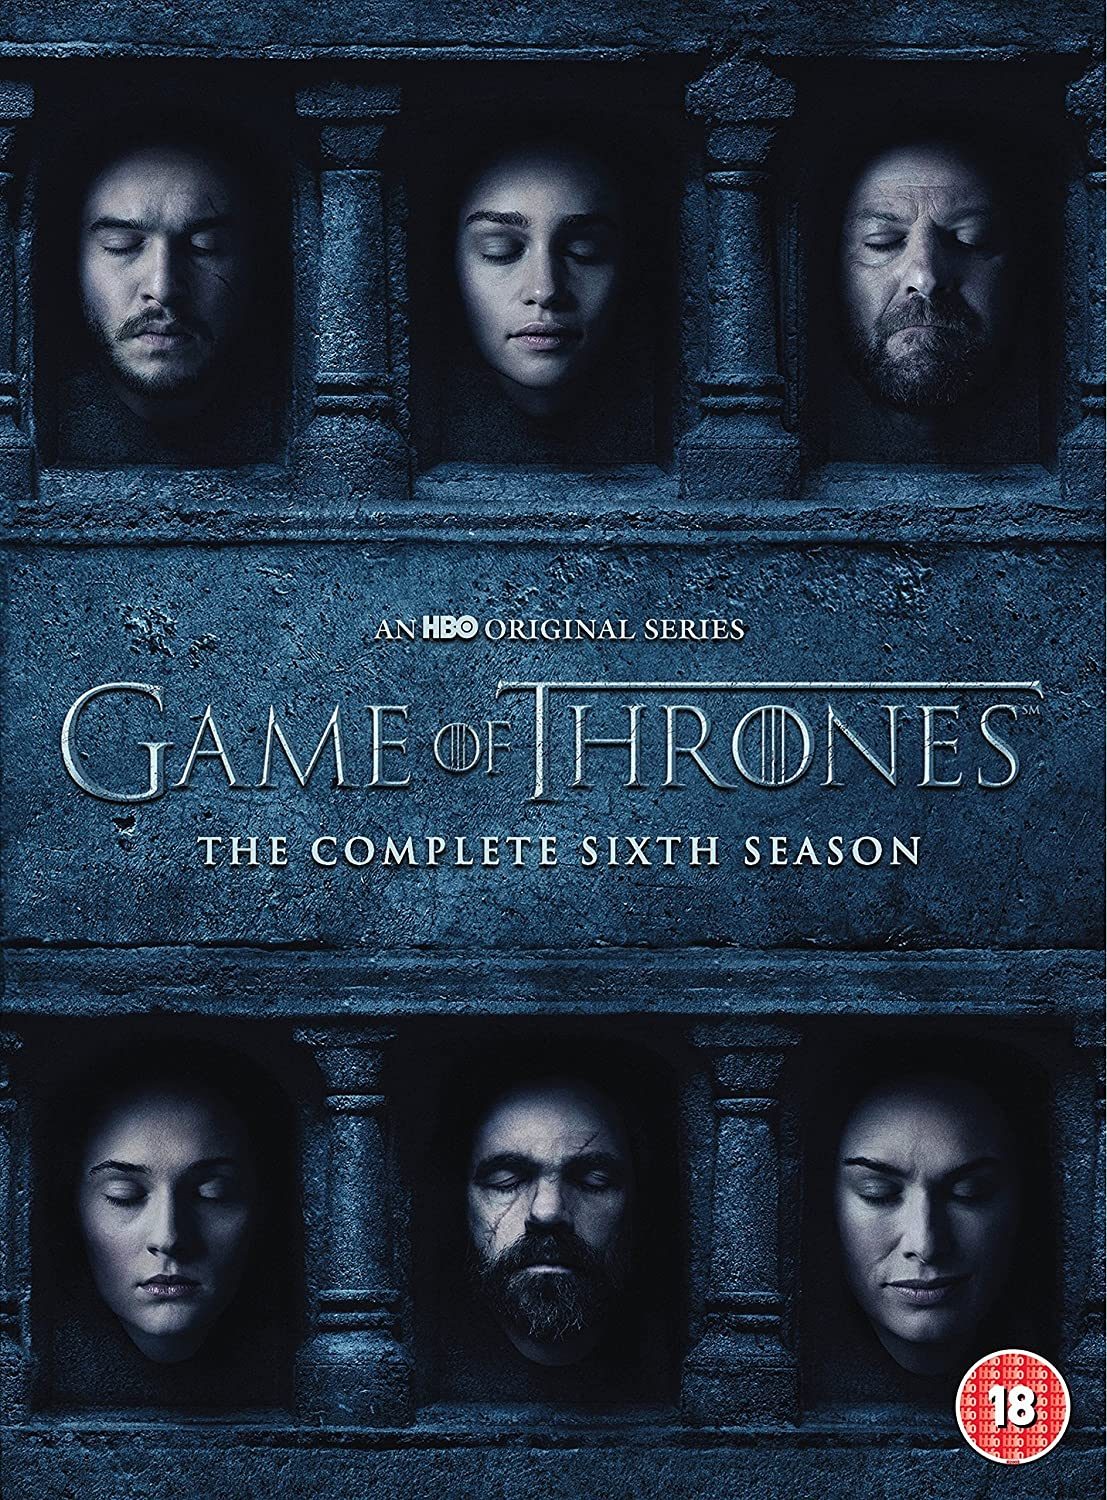 Game of Thrones - Season 6 [DVD] [2016]: Amazon.co.uk: Peter ...